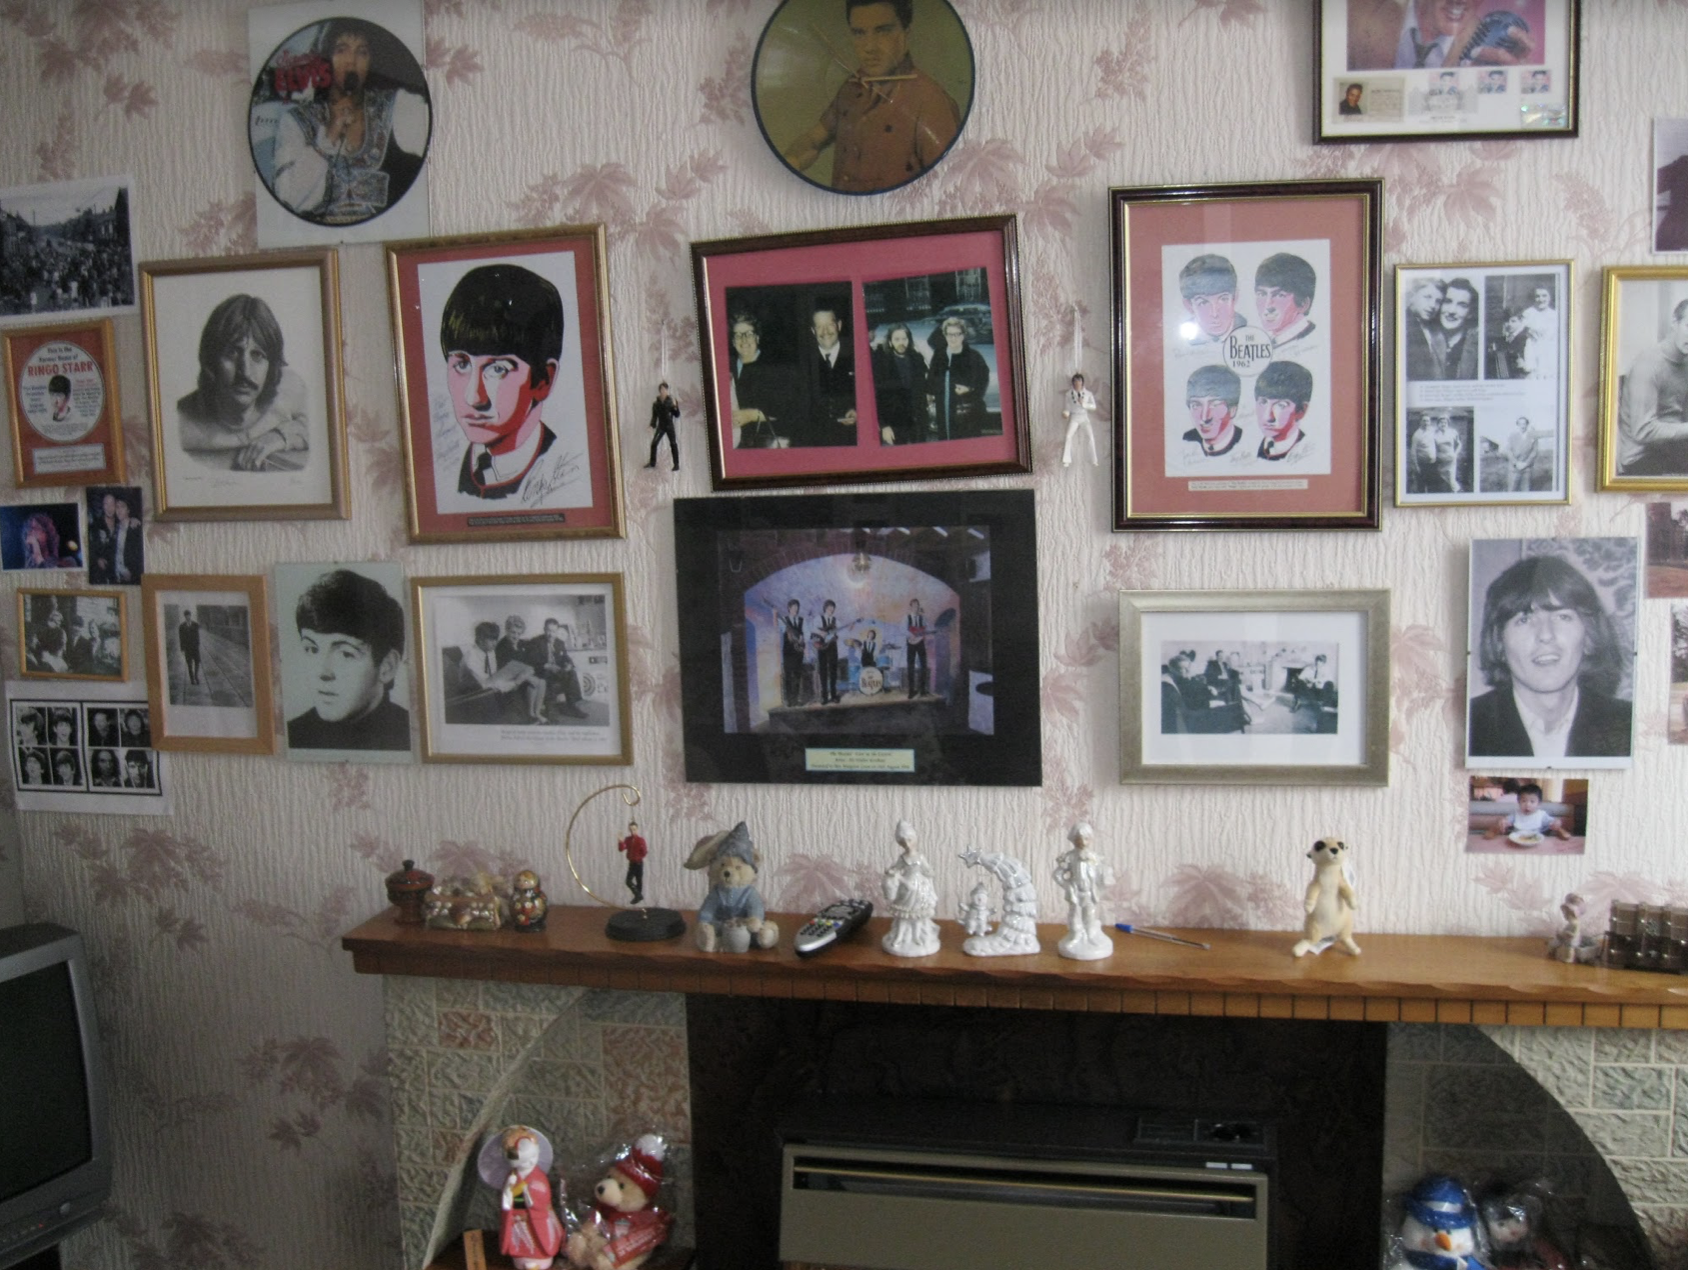 The home of Ringo Starr